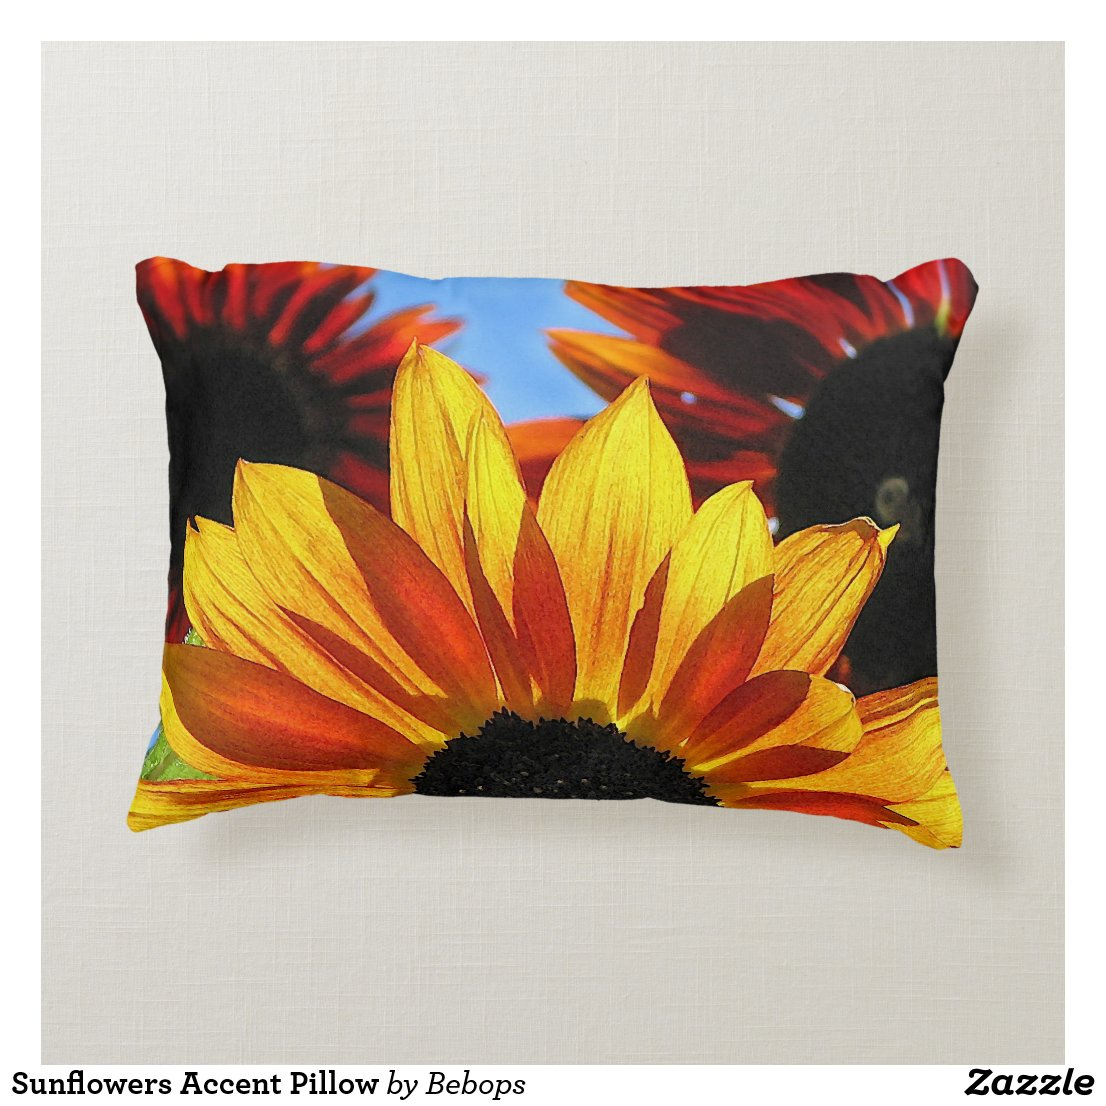 Sunflowers Accent Pillow